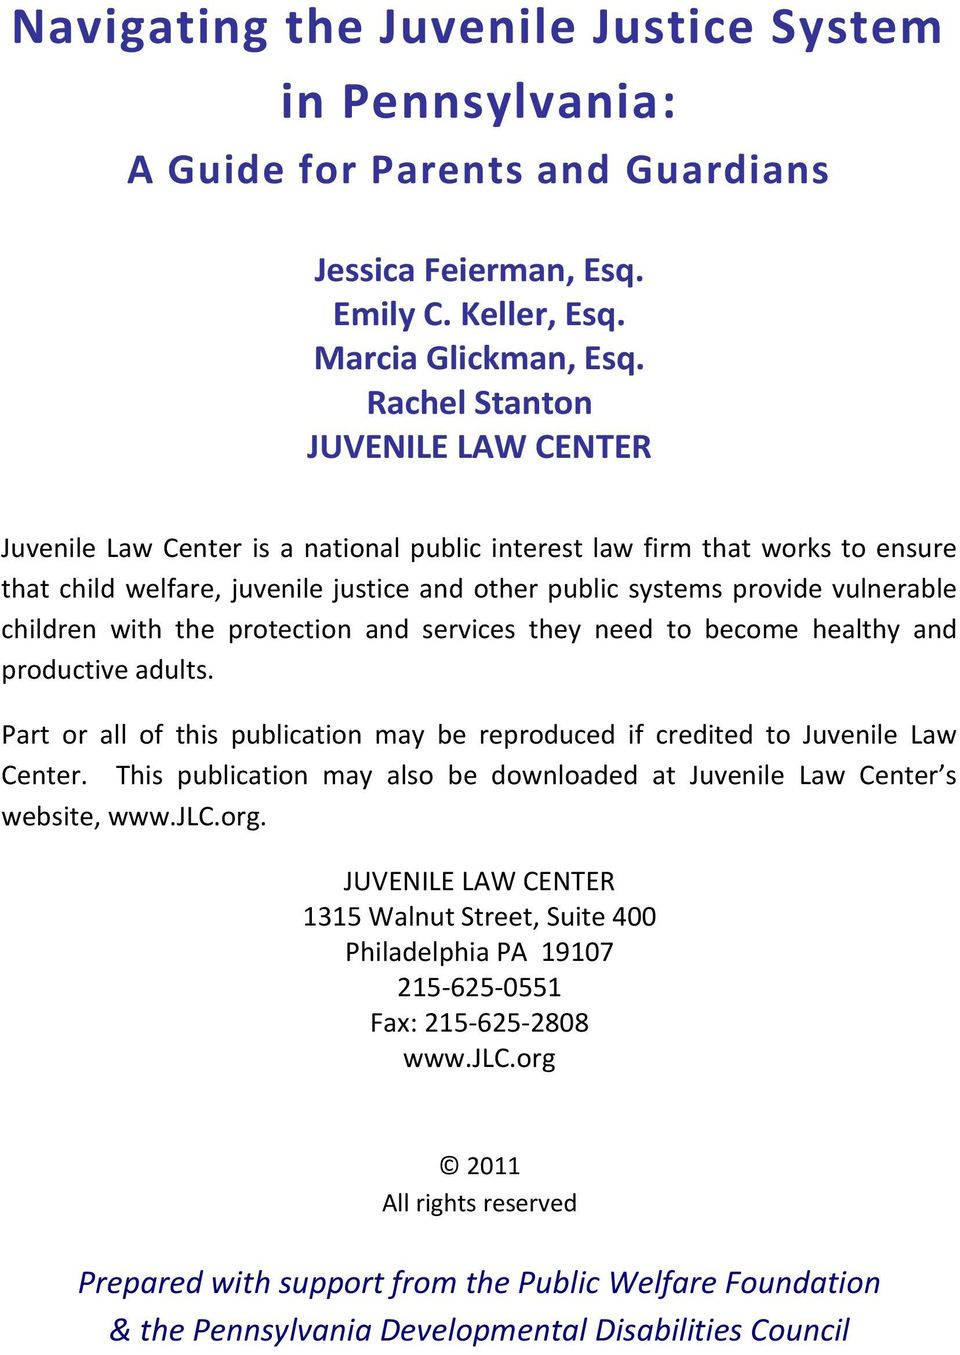 children with the protection and services they need to become healthy and productive adults. Part or all of this publication may be reproduced if credited to Juvenile Law Center.